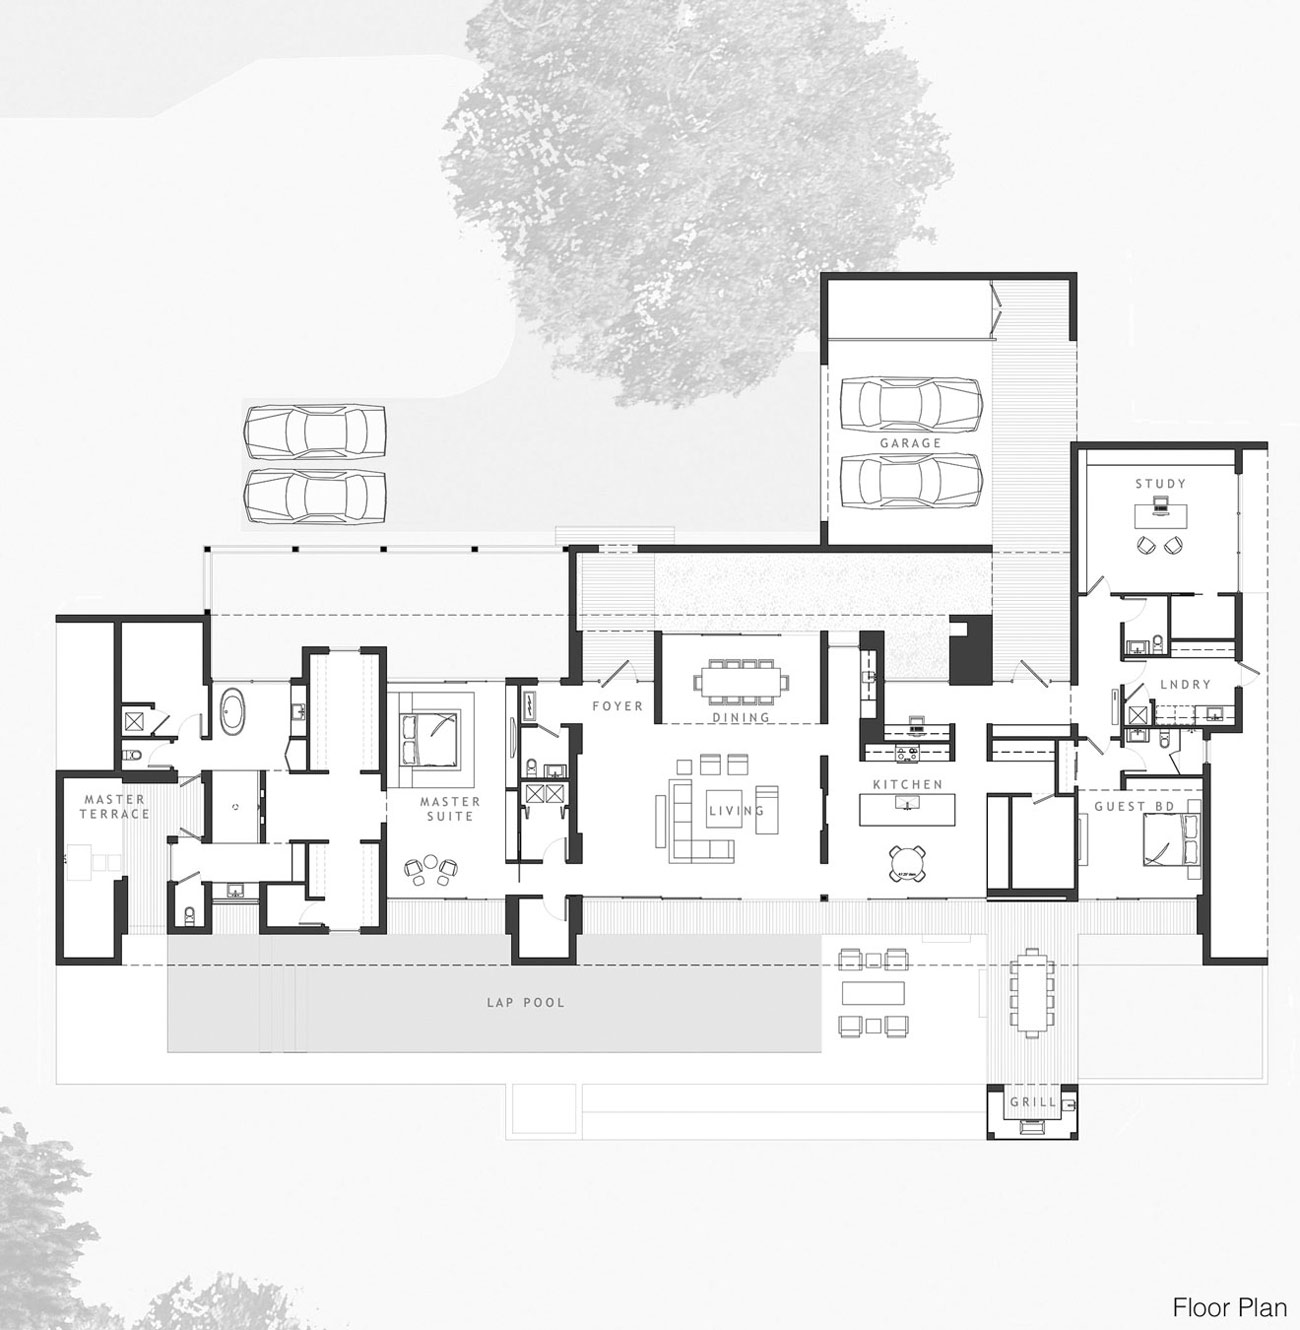 Floor Plan, Eco-Friendly Contemporary Home in Winter Haven, Florida